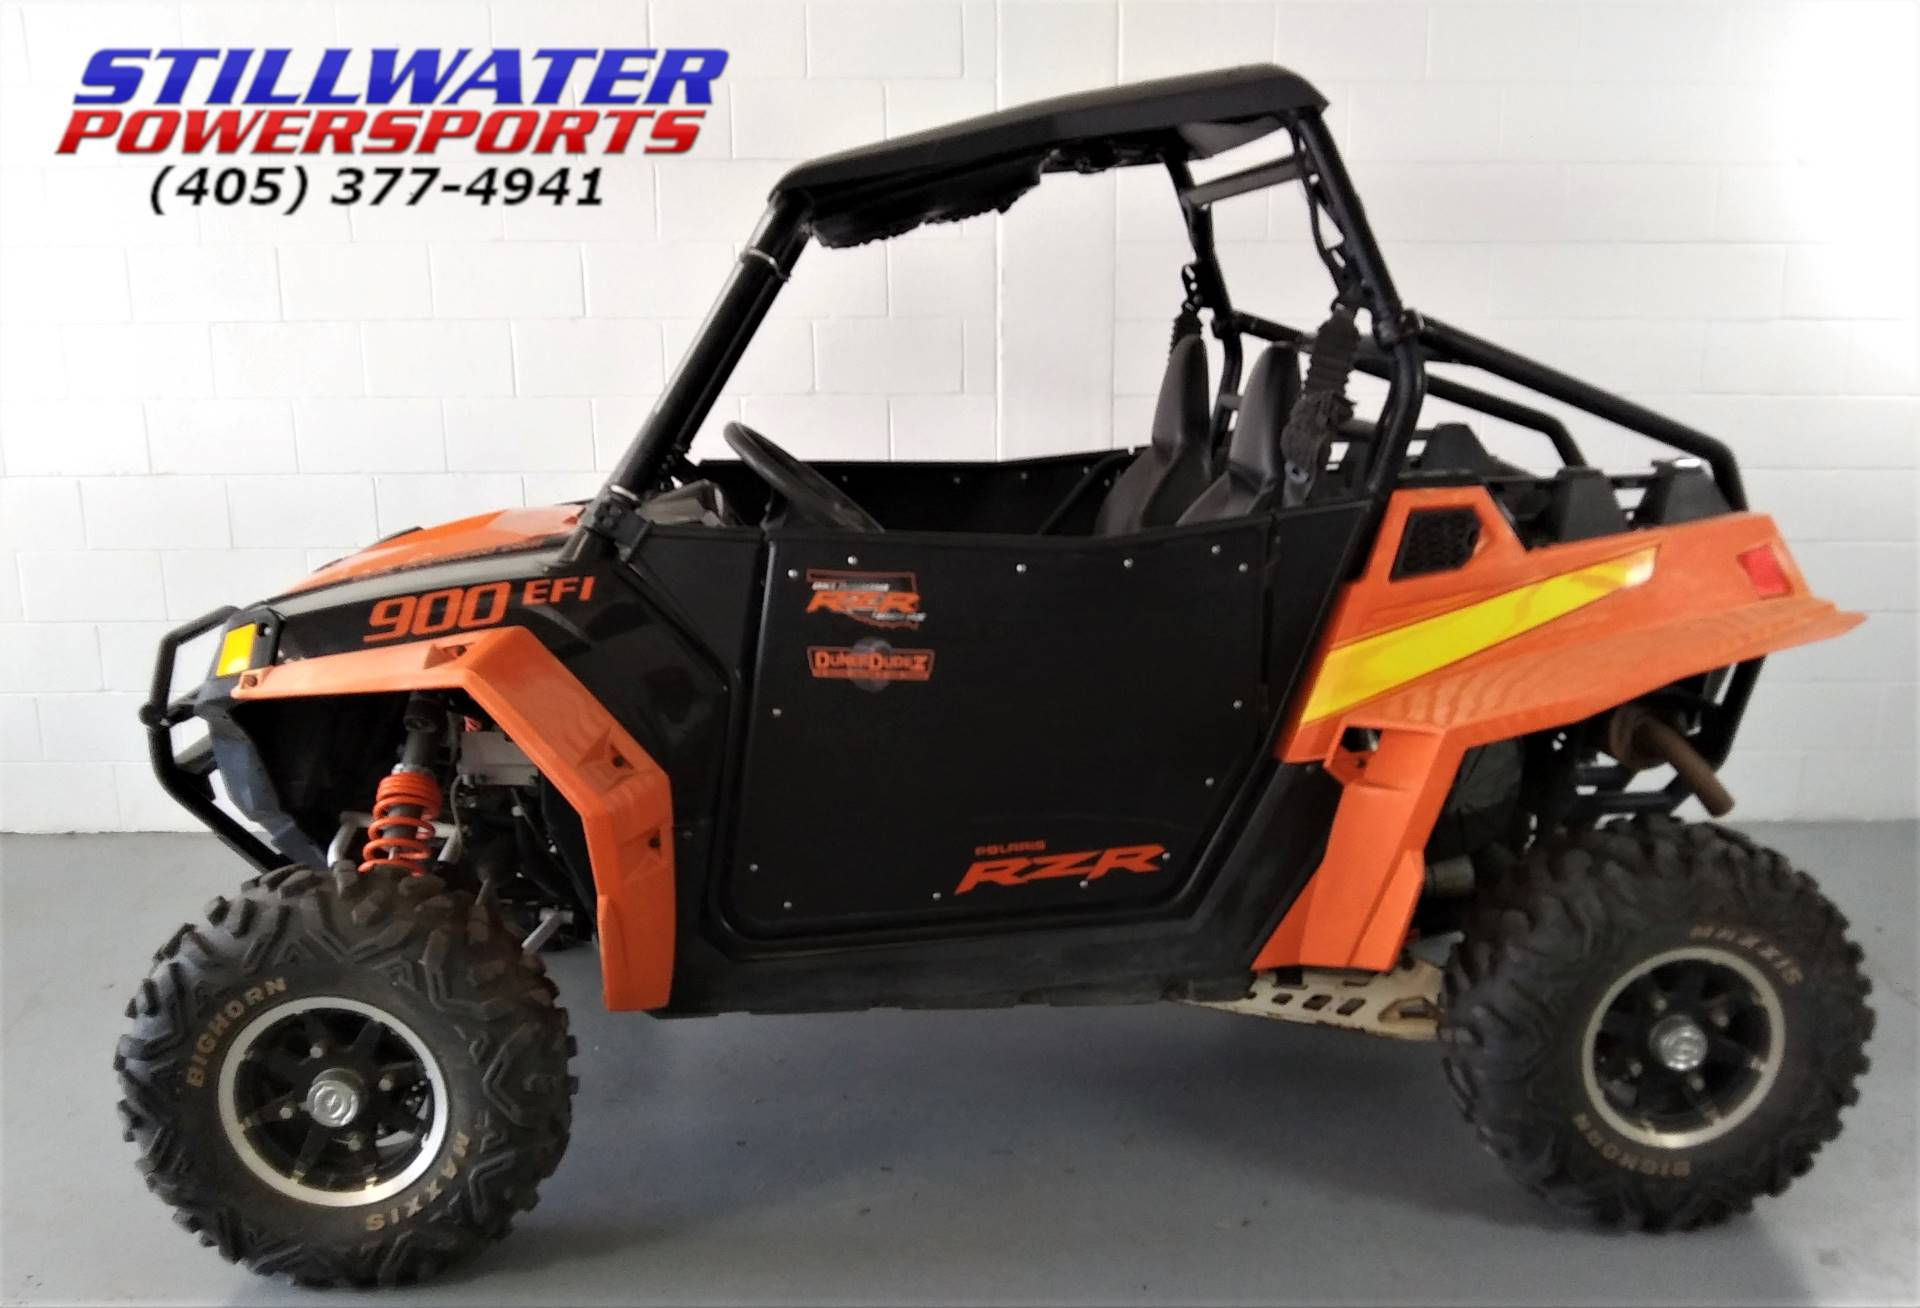 2012 Polaris Ranger RZR® XP 900 LE in Stillwater, Oklahoma - Photo 5